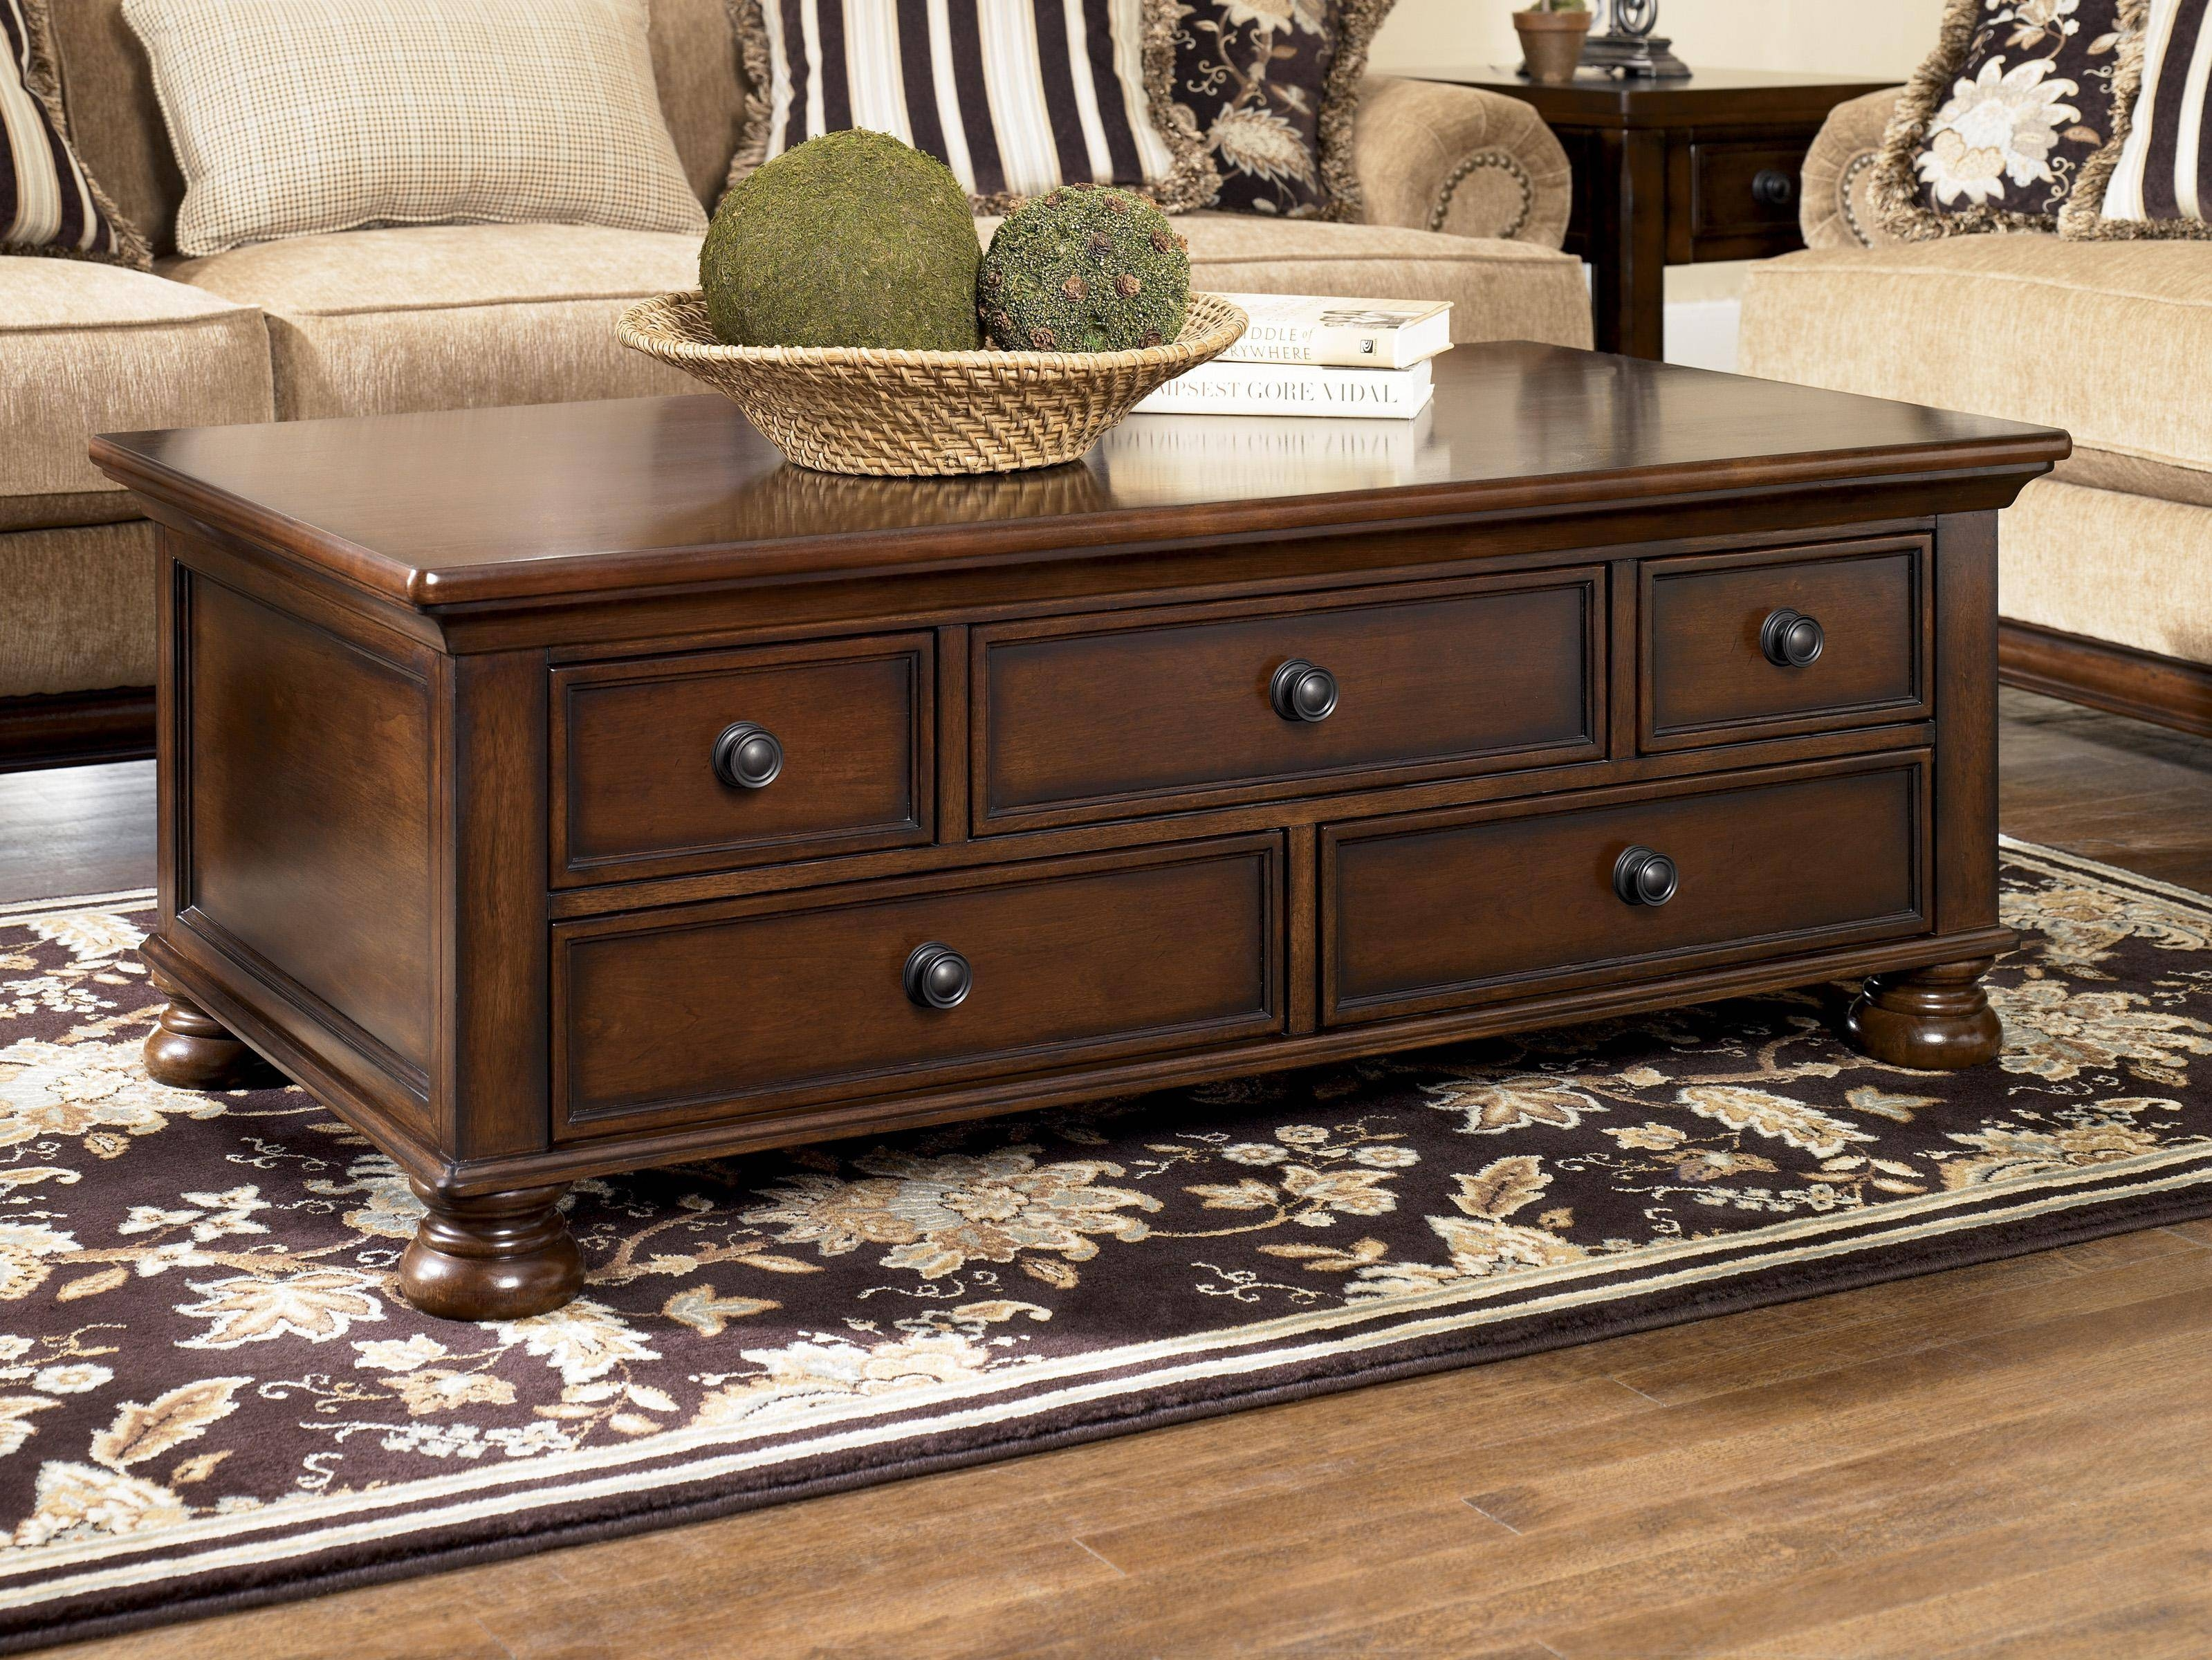 Coffee Table Storage : Storage Coffee Tables In The Model Of pertaining to Coffee Tables With Storage (Image 6 of 30)